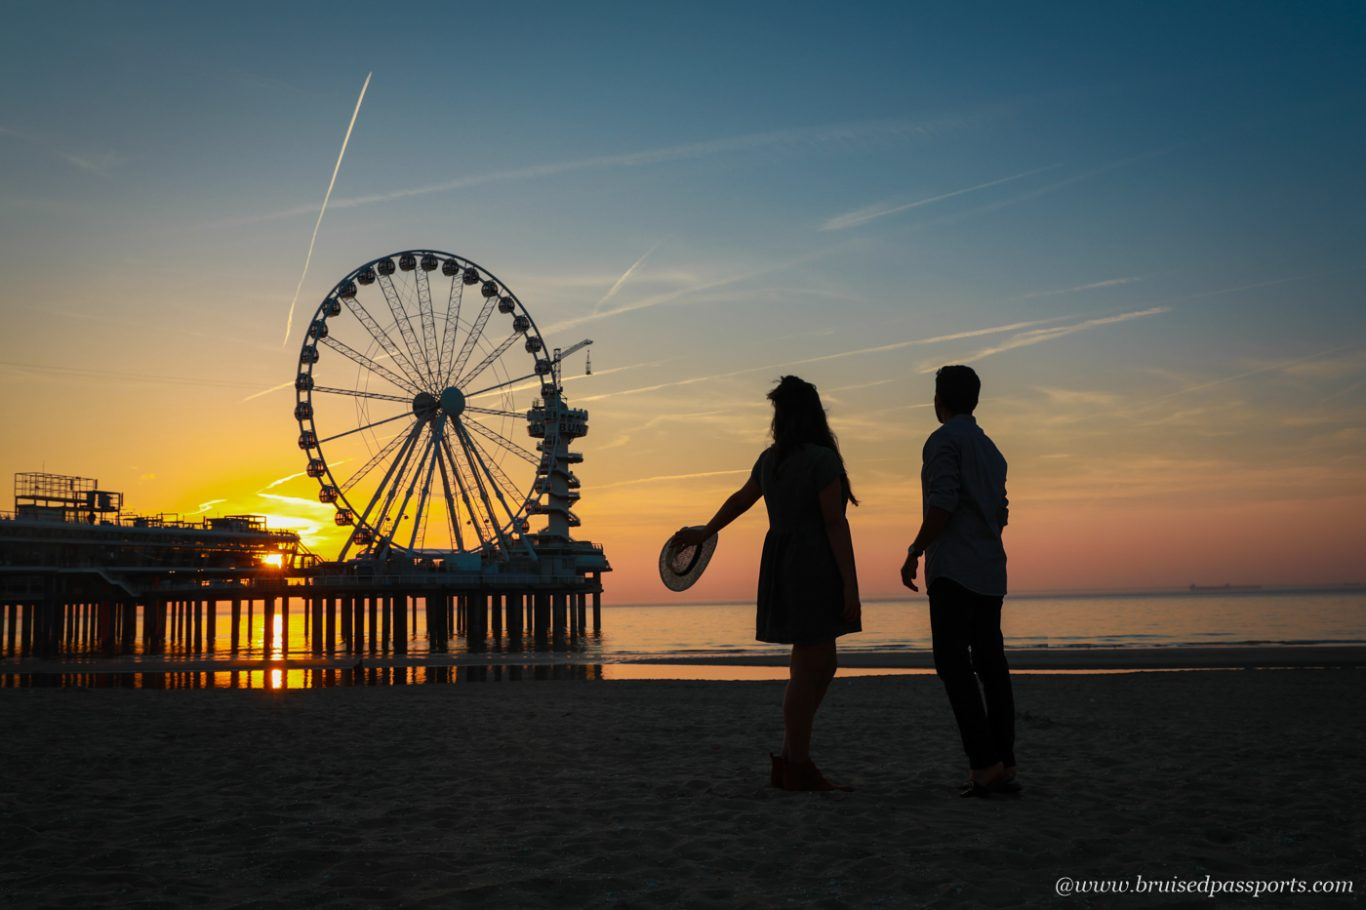 Sunset at the pier near The Hague